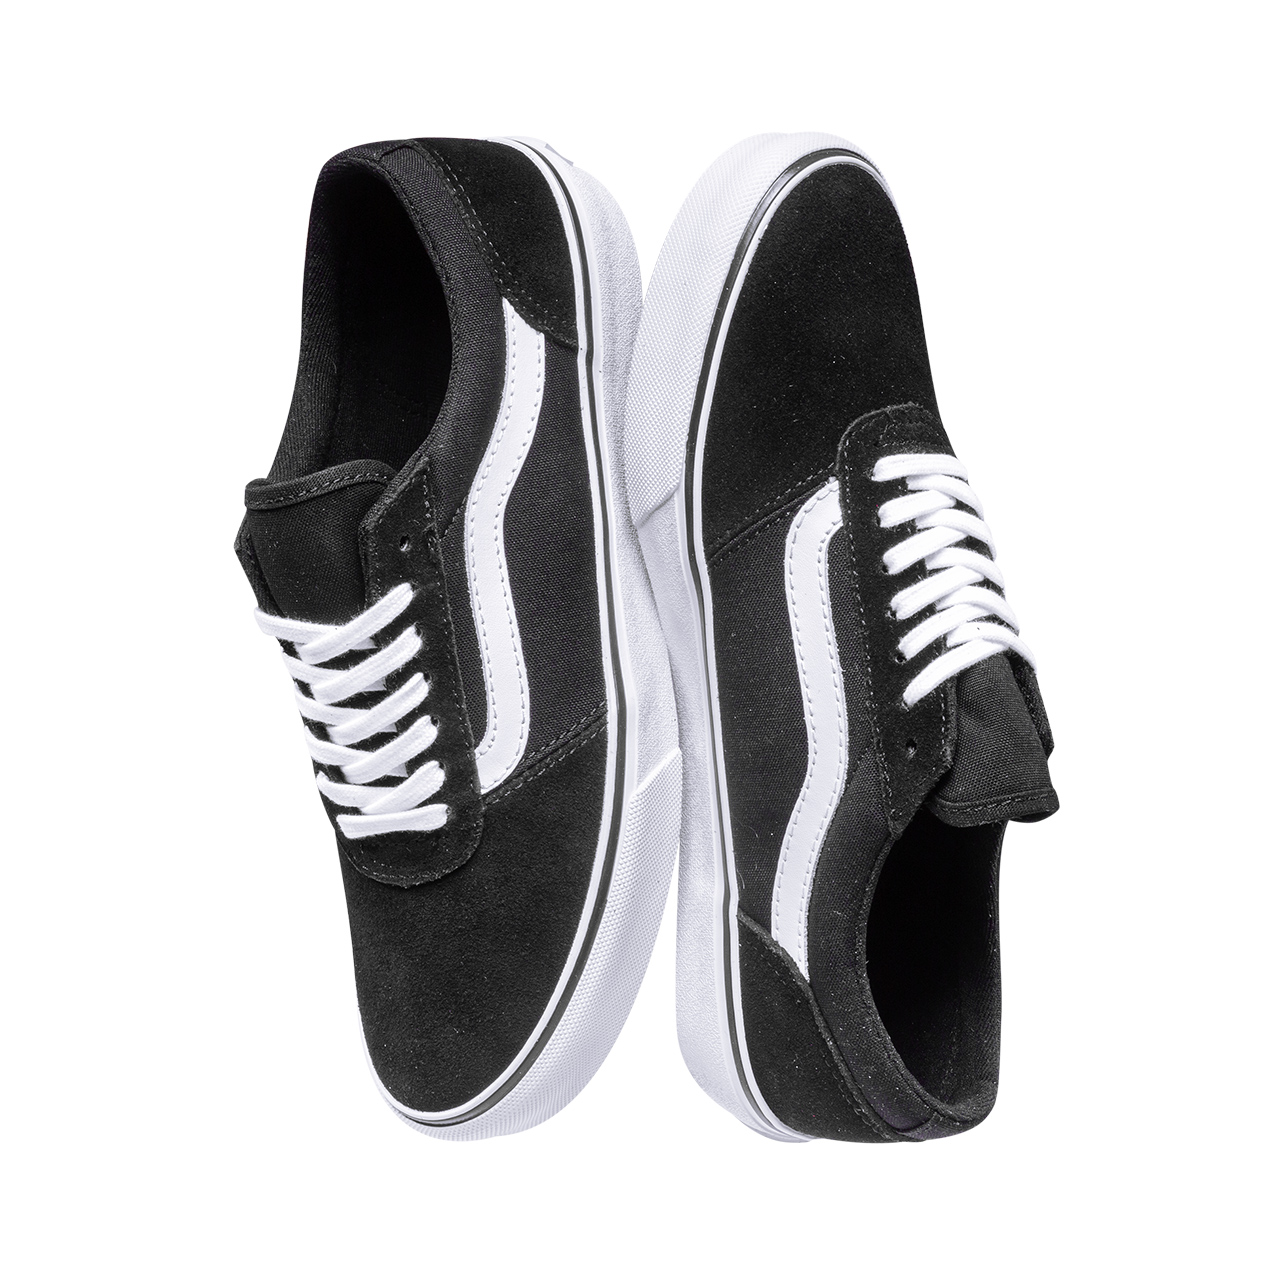 d3c60bb42008 Original New Arrival Vans Women s Active Maddie Low top Skateboarding Shoes  Sneakers Outdoor Canvas Comfortable VN0A3IL2IJU-in Skateboarding from  Sports ...